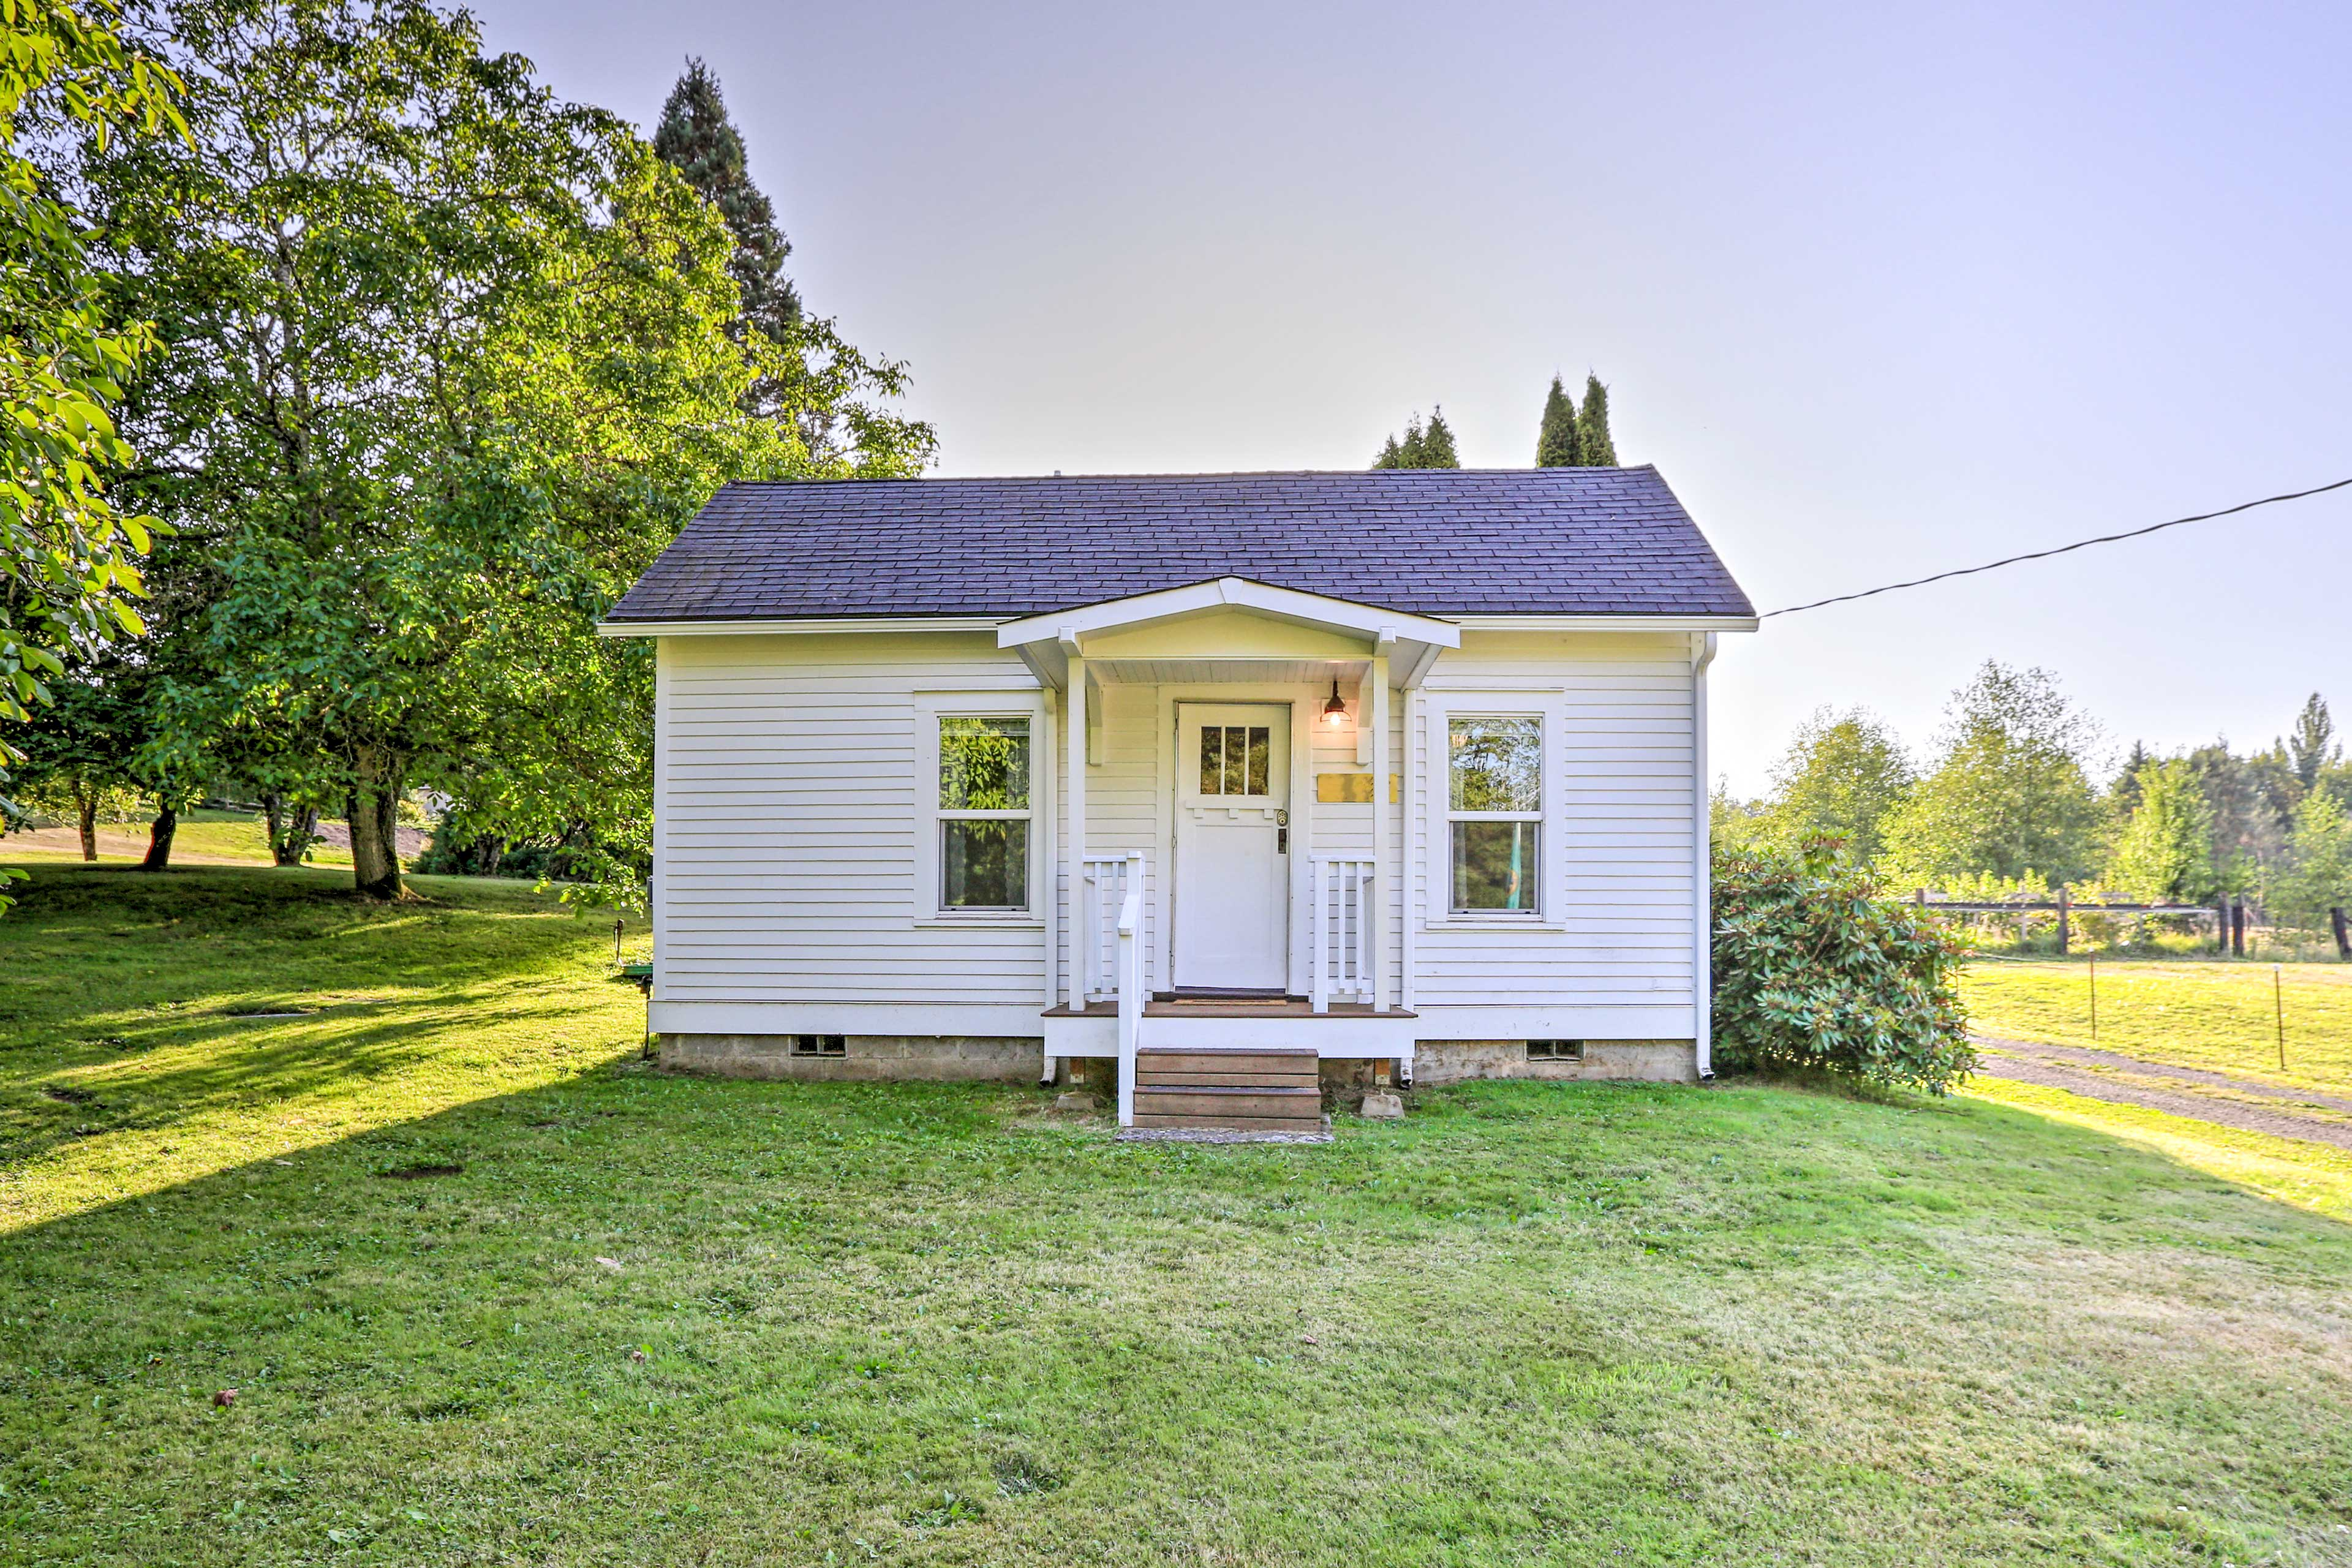 Welcome to your cozy cottage getaway in the Pacific Northwest!